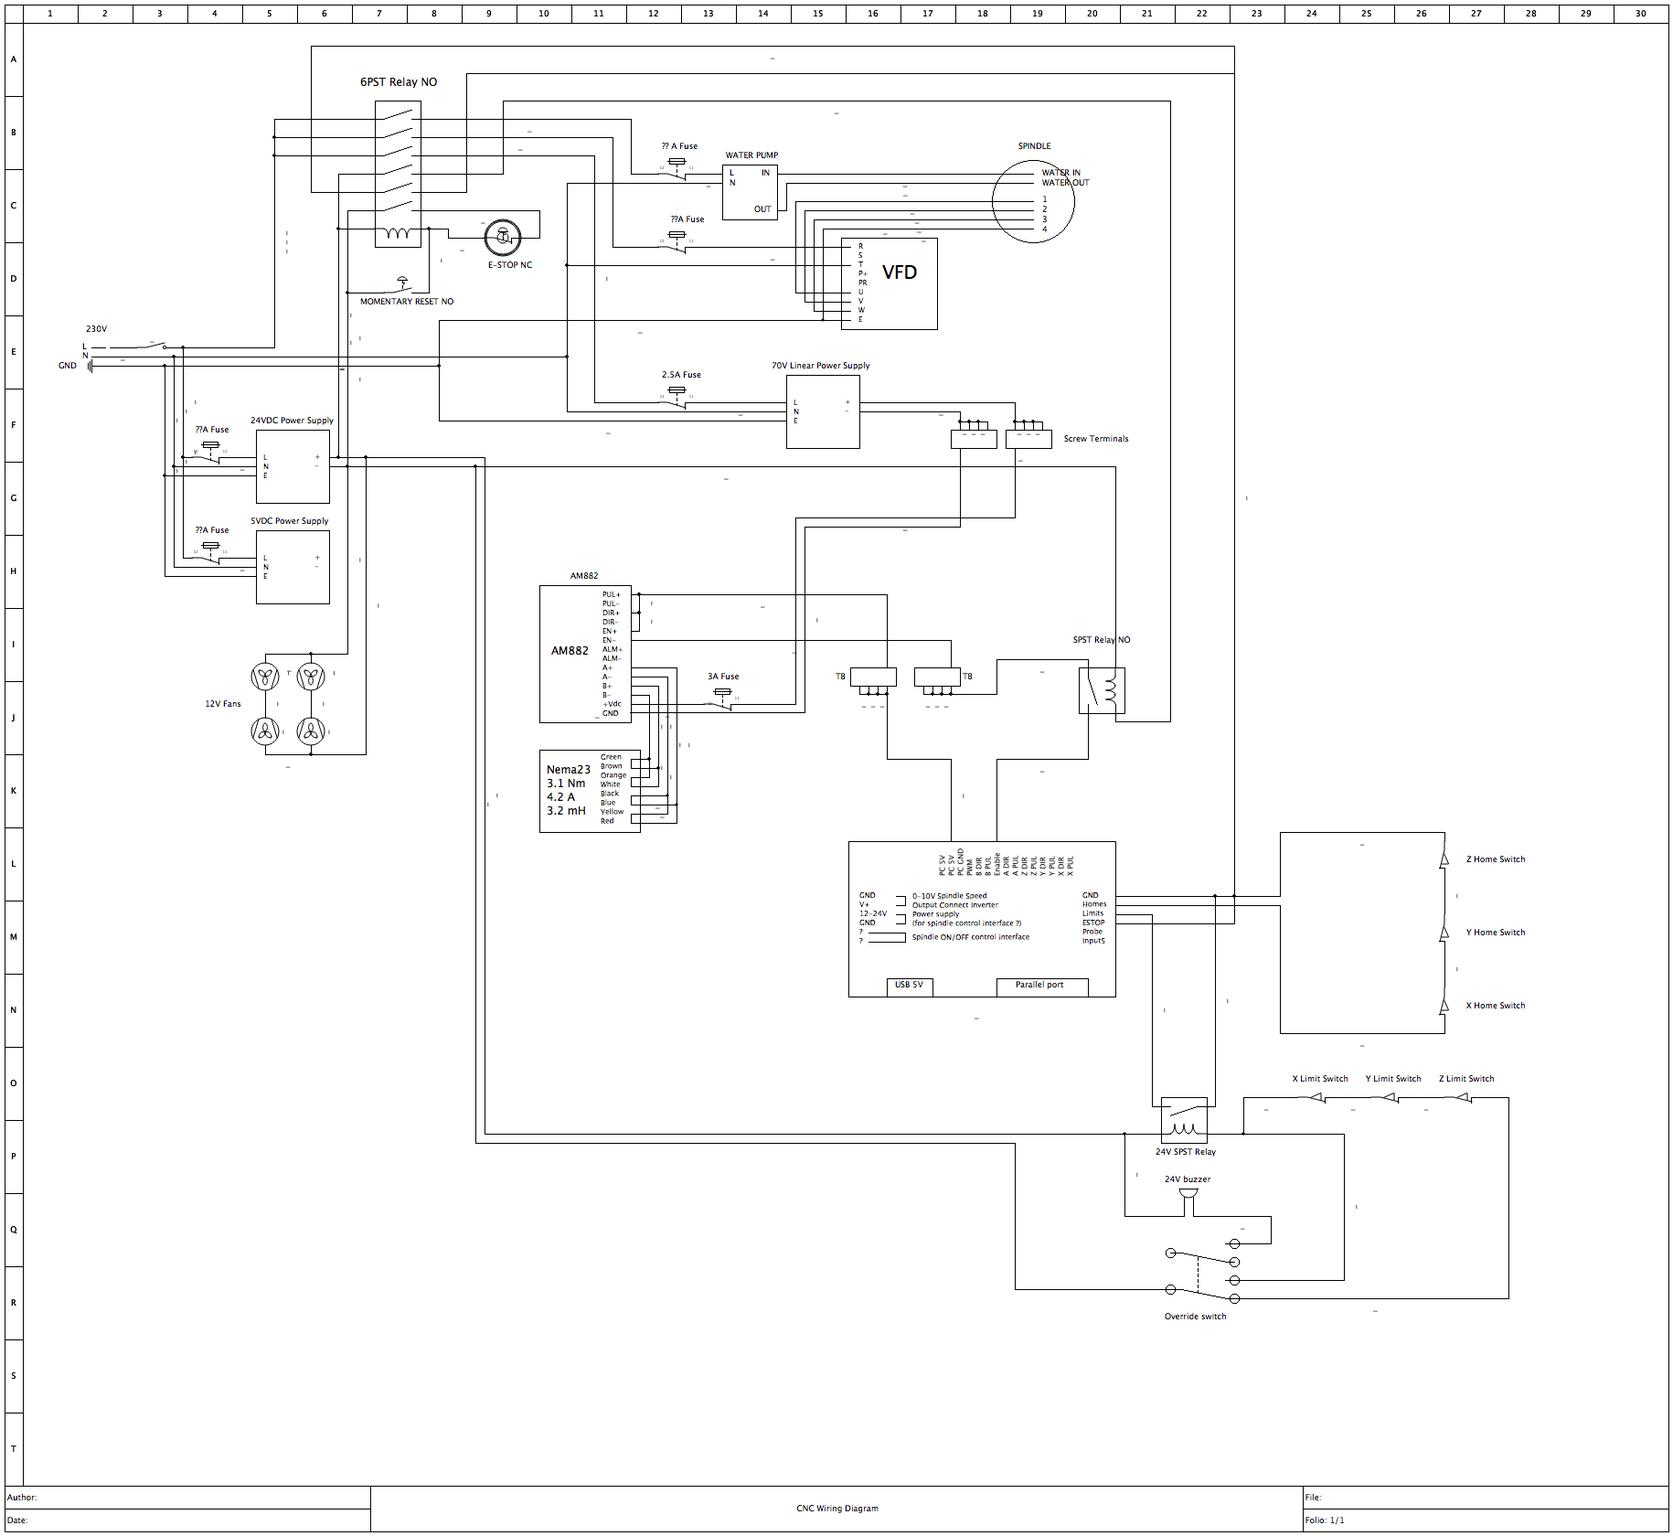 wiring diagram check page 4 click image for larger version wiring diagram jpg views 327